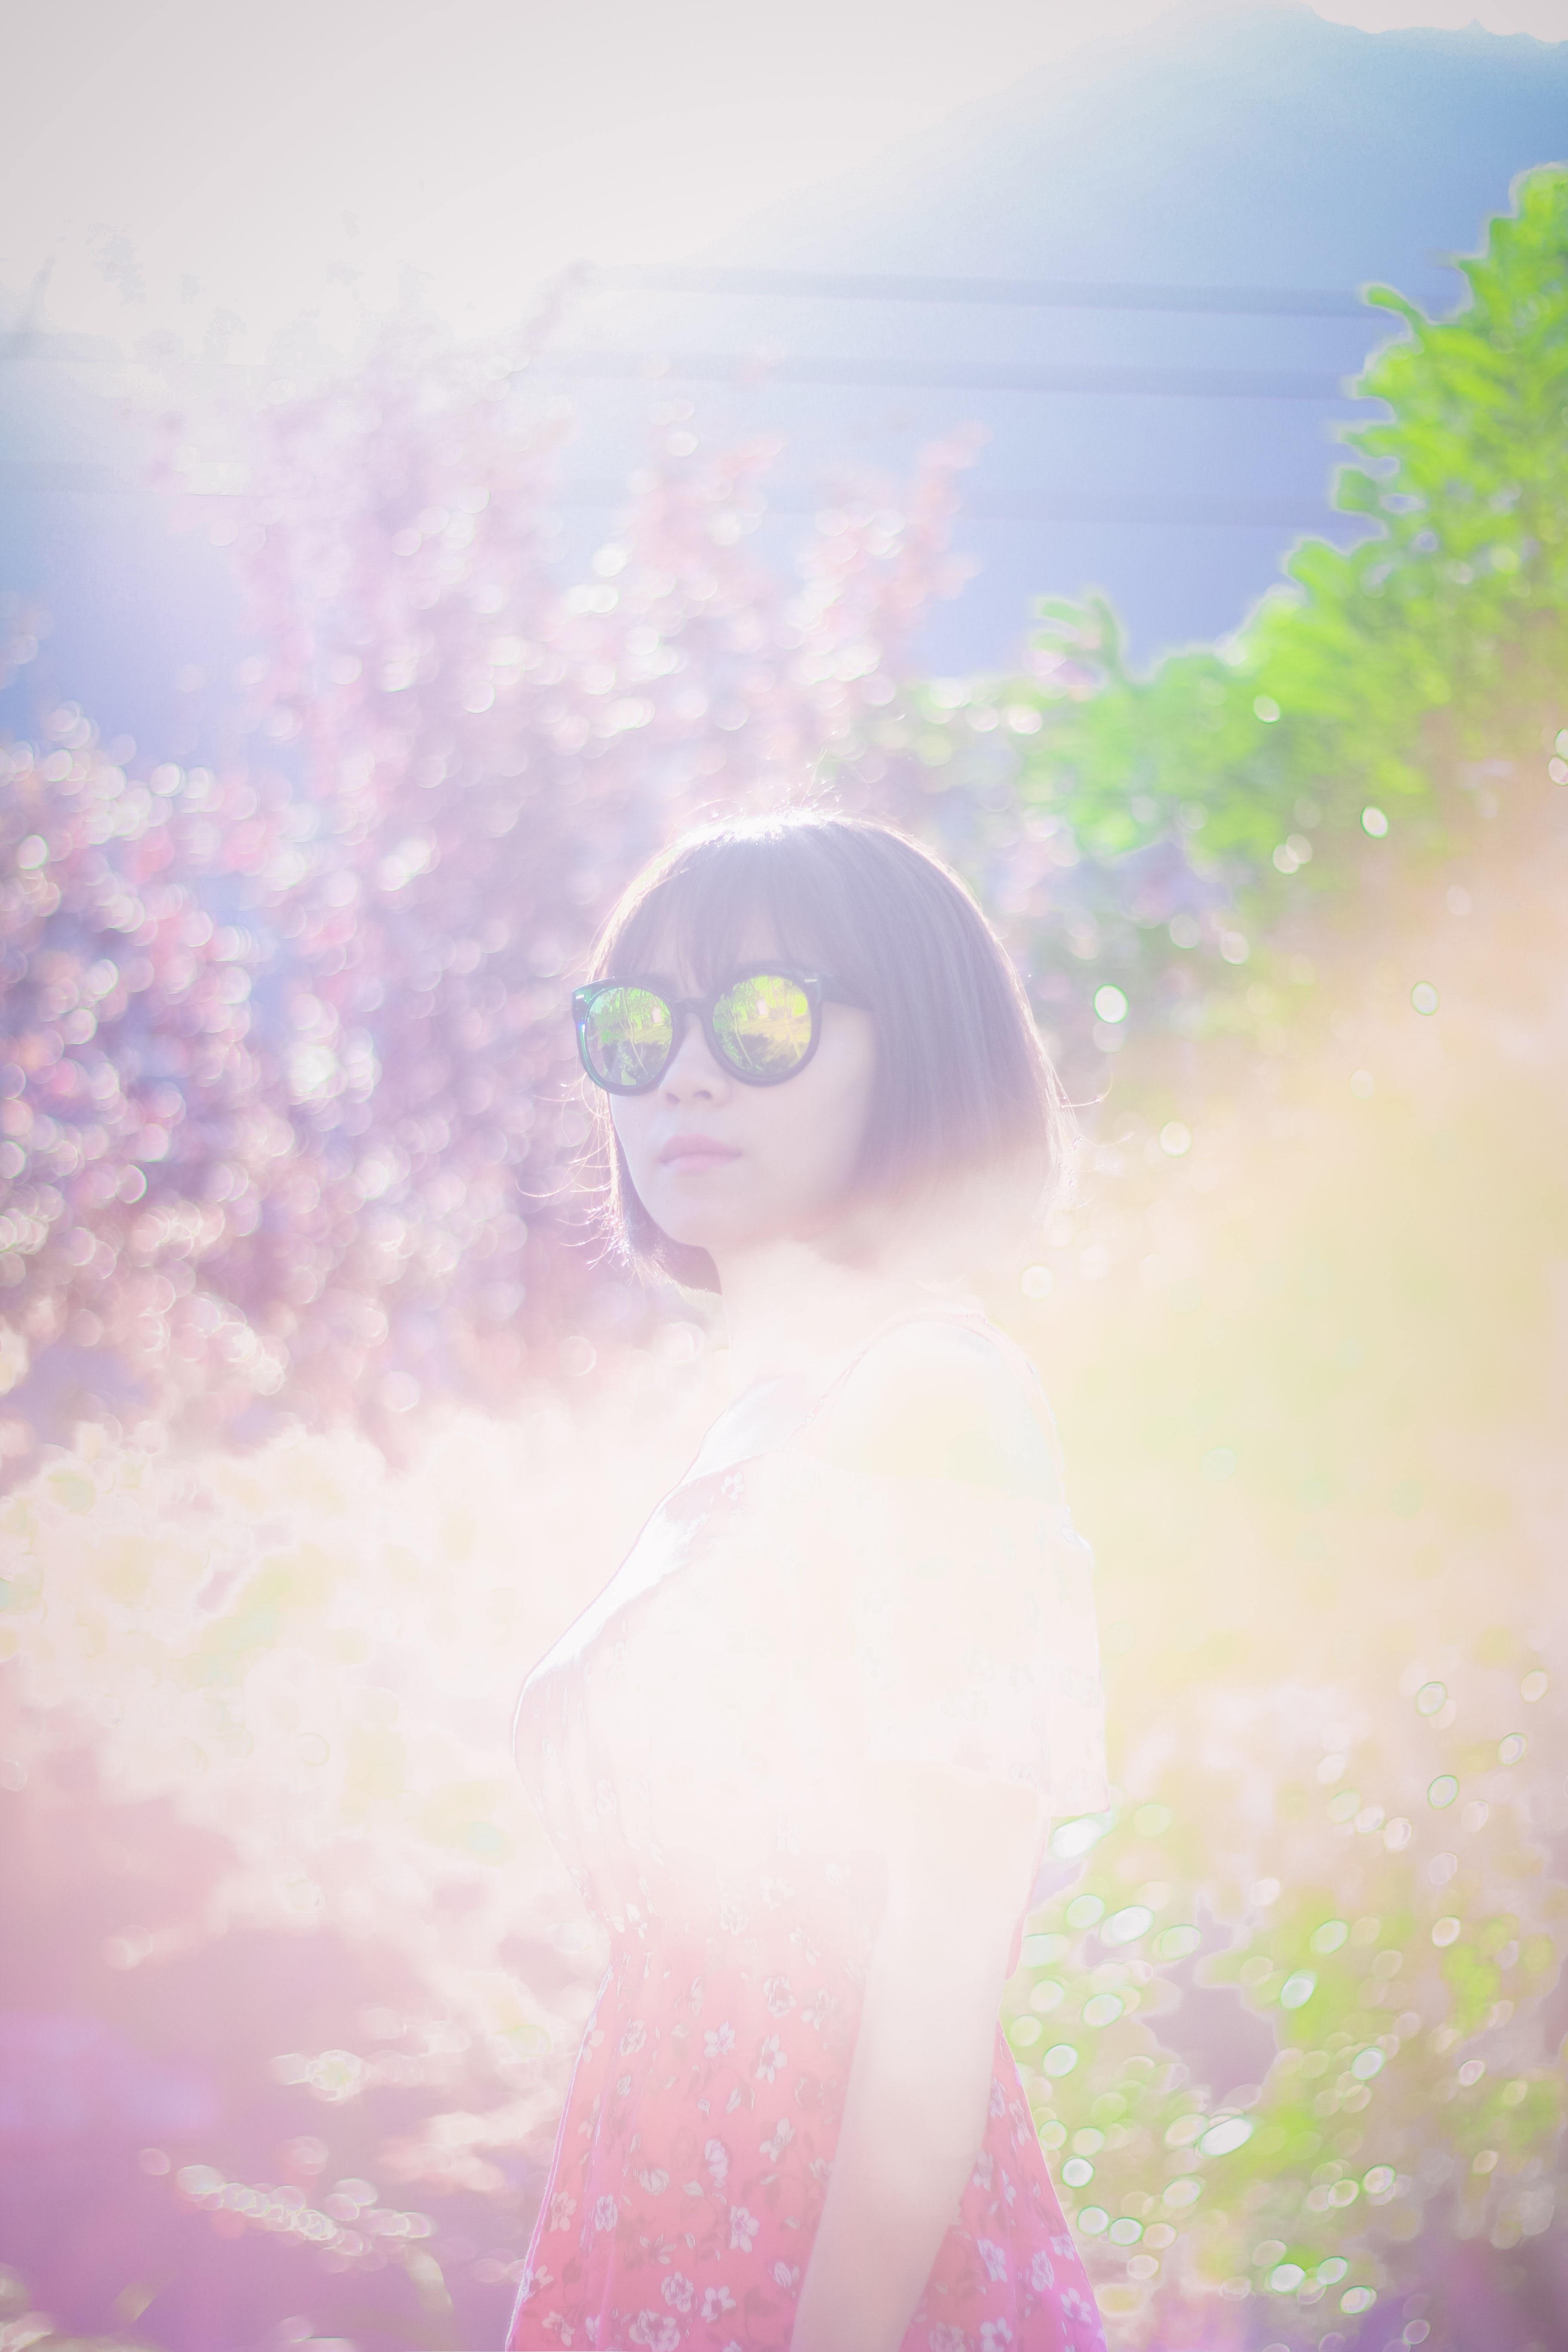 woman wearing sunglasses while standing near trees